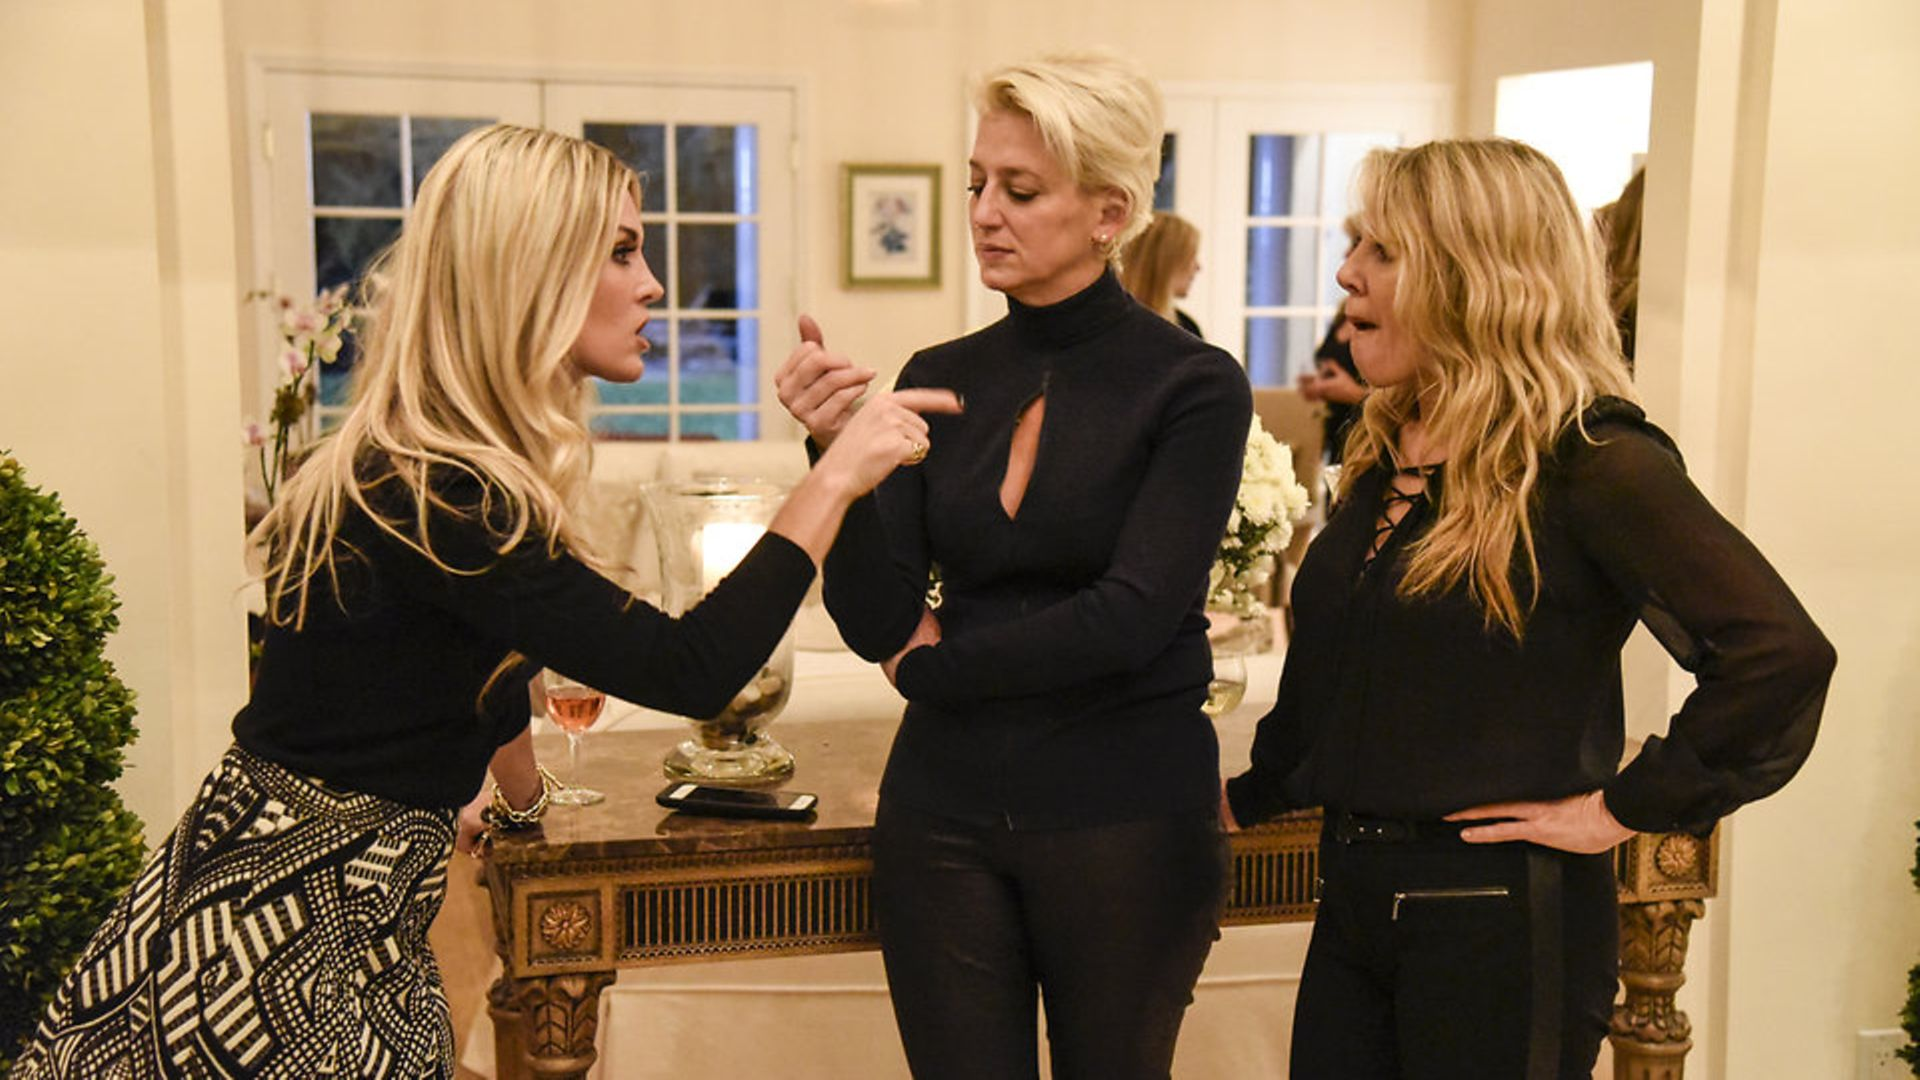 Things get heated at a house party in the Hamptons thrown by Ramona (right), in a scene from Real Housewives of New York, as one of her guests makes a point - Credit: Bravo